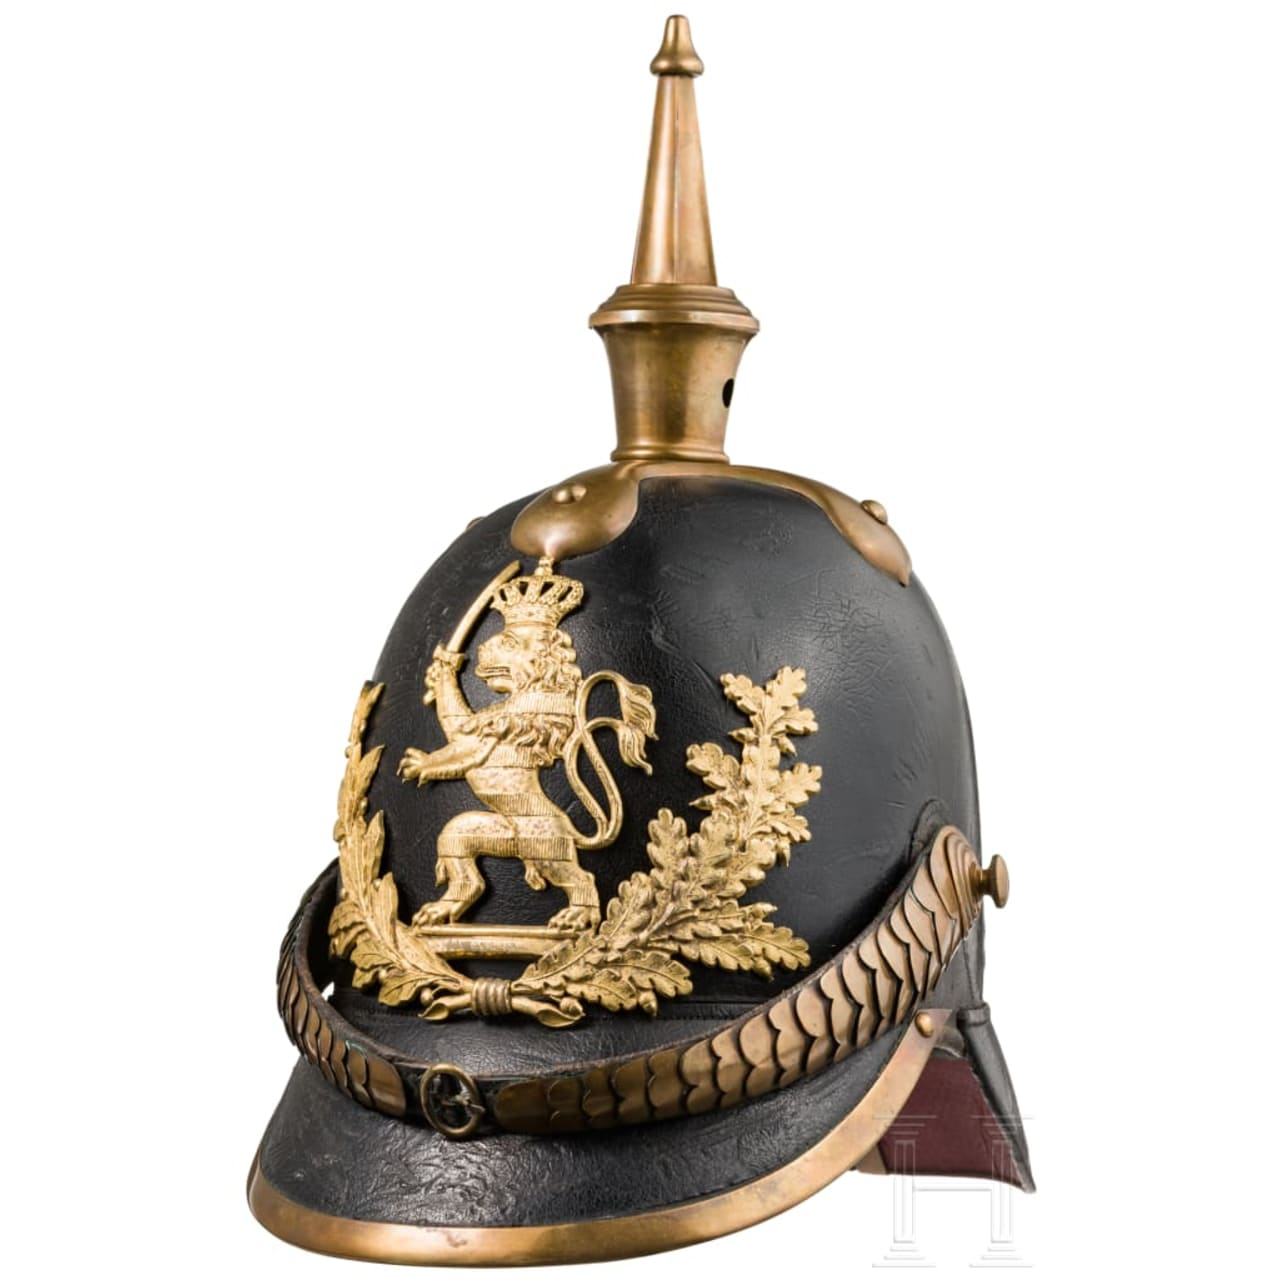 A helmet M 1849 for officers of the infantry